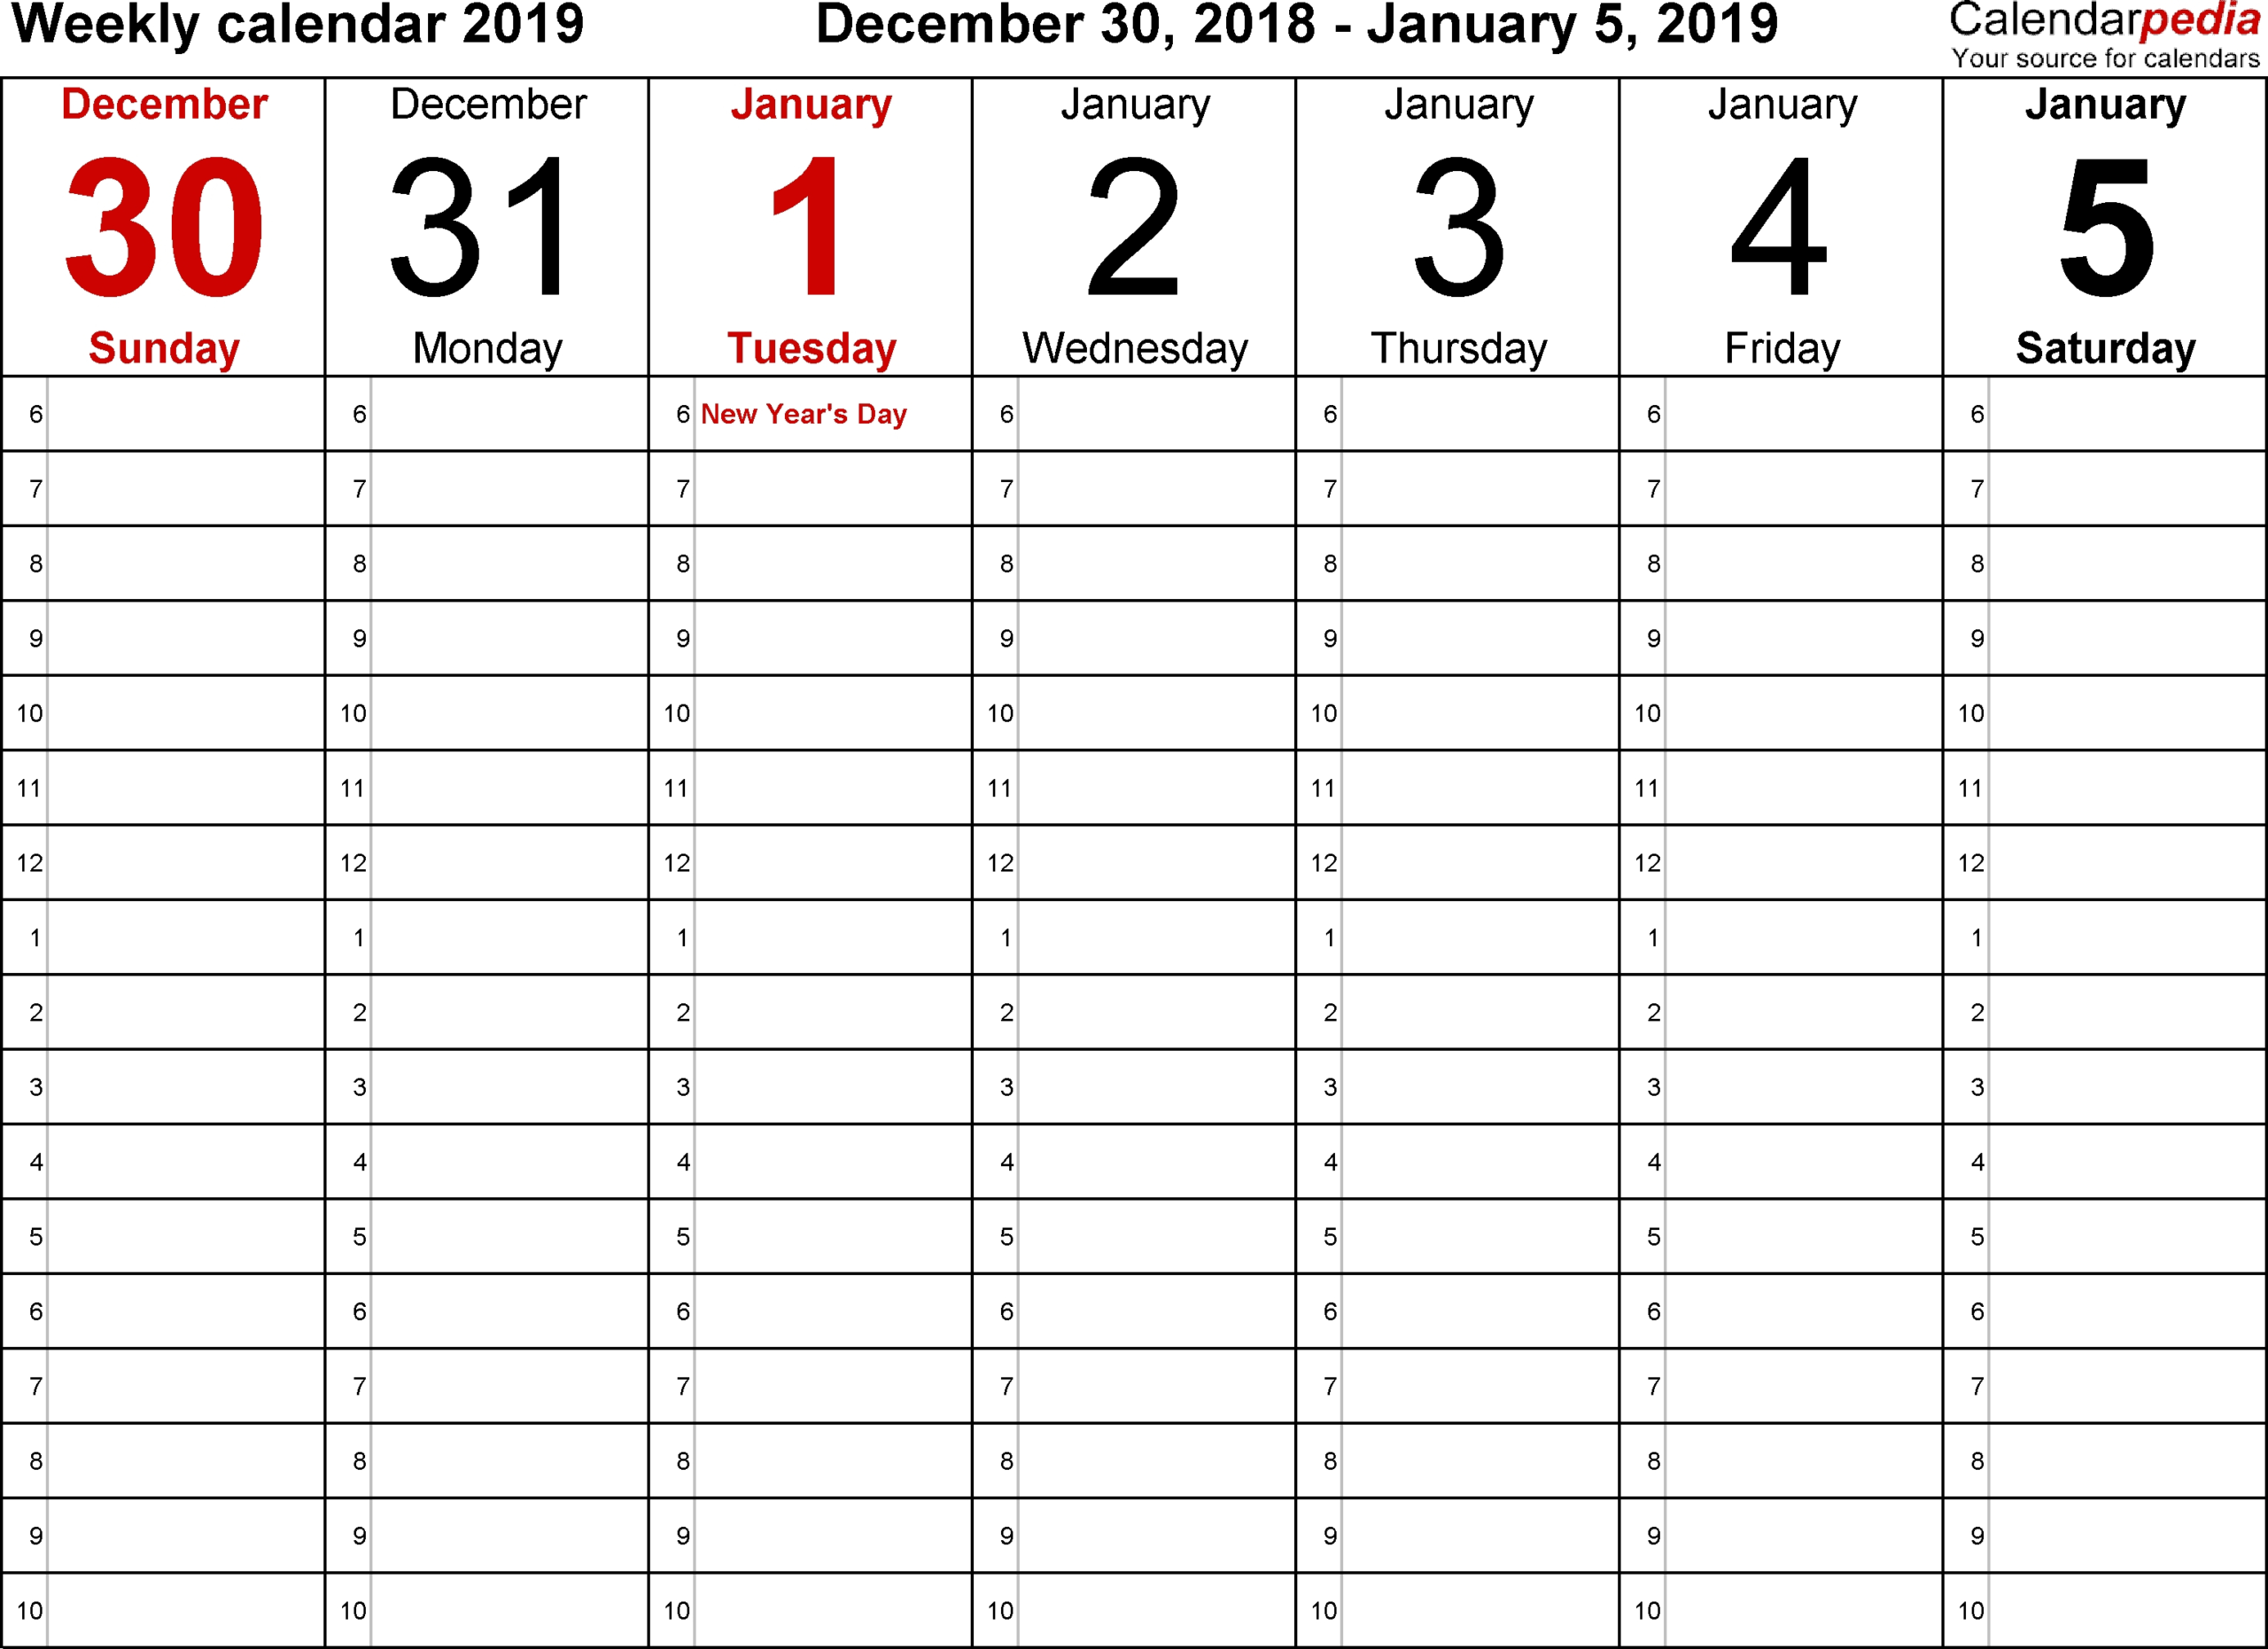 5 Day Week Blank Calendar With Time Slots Printable pertaining to Weekly Calendar With Time